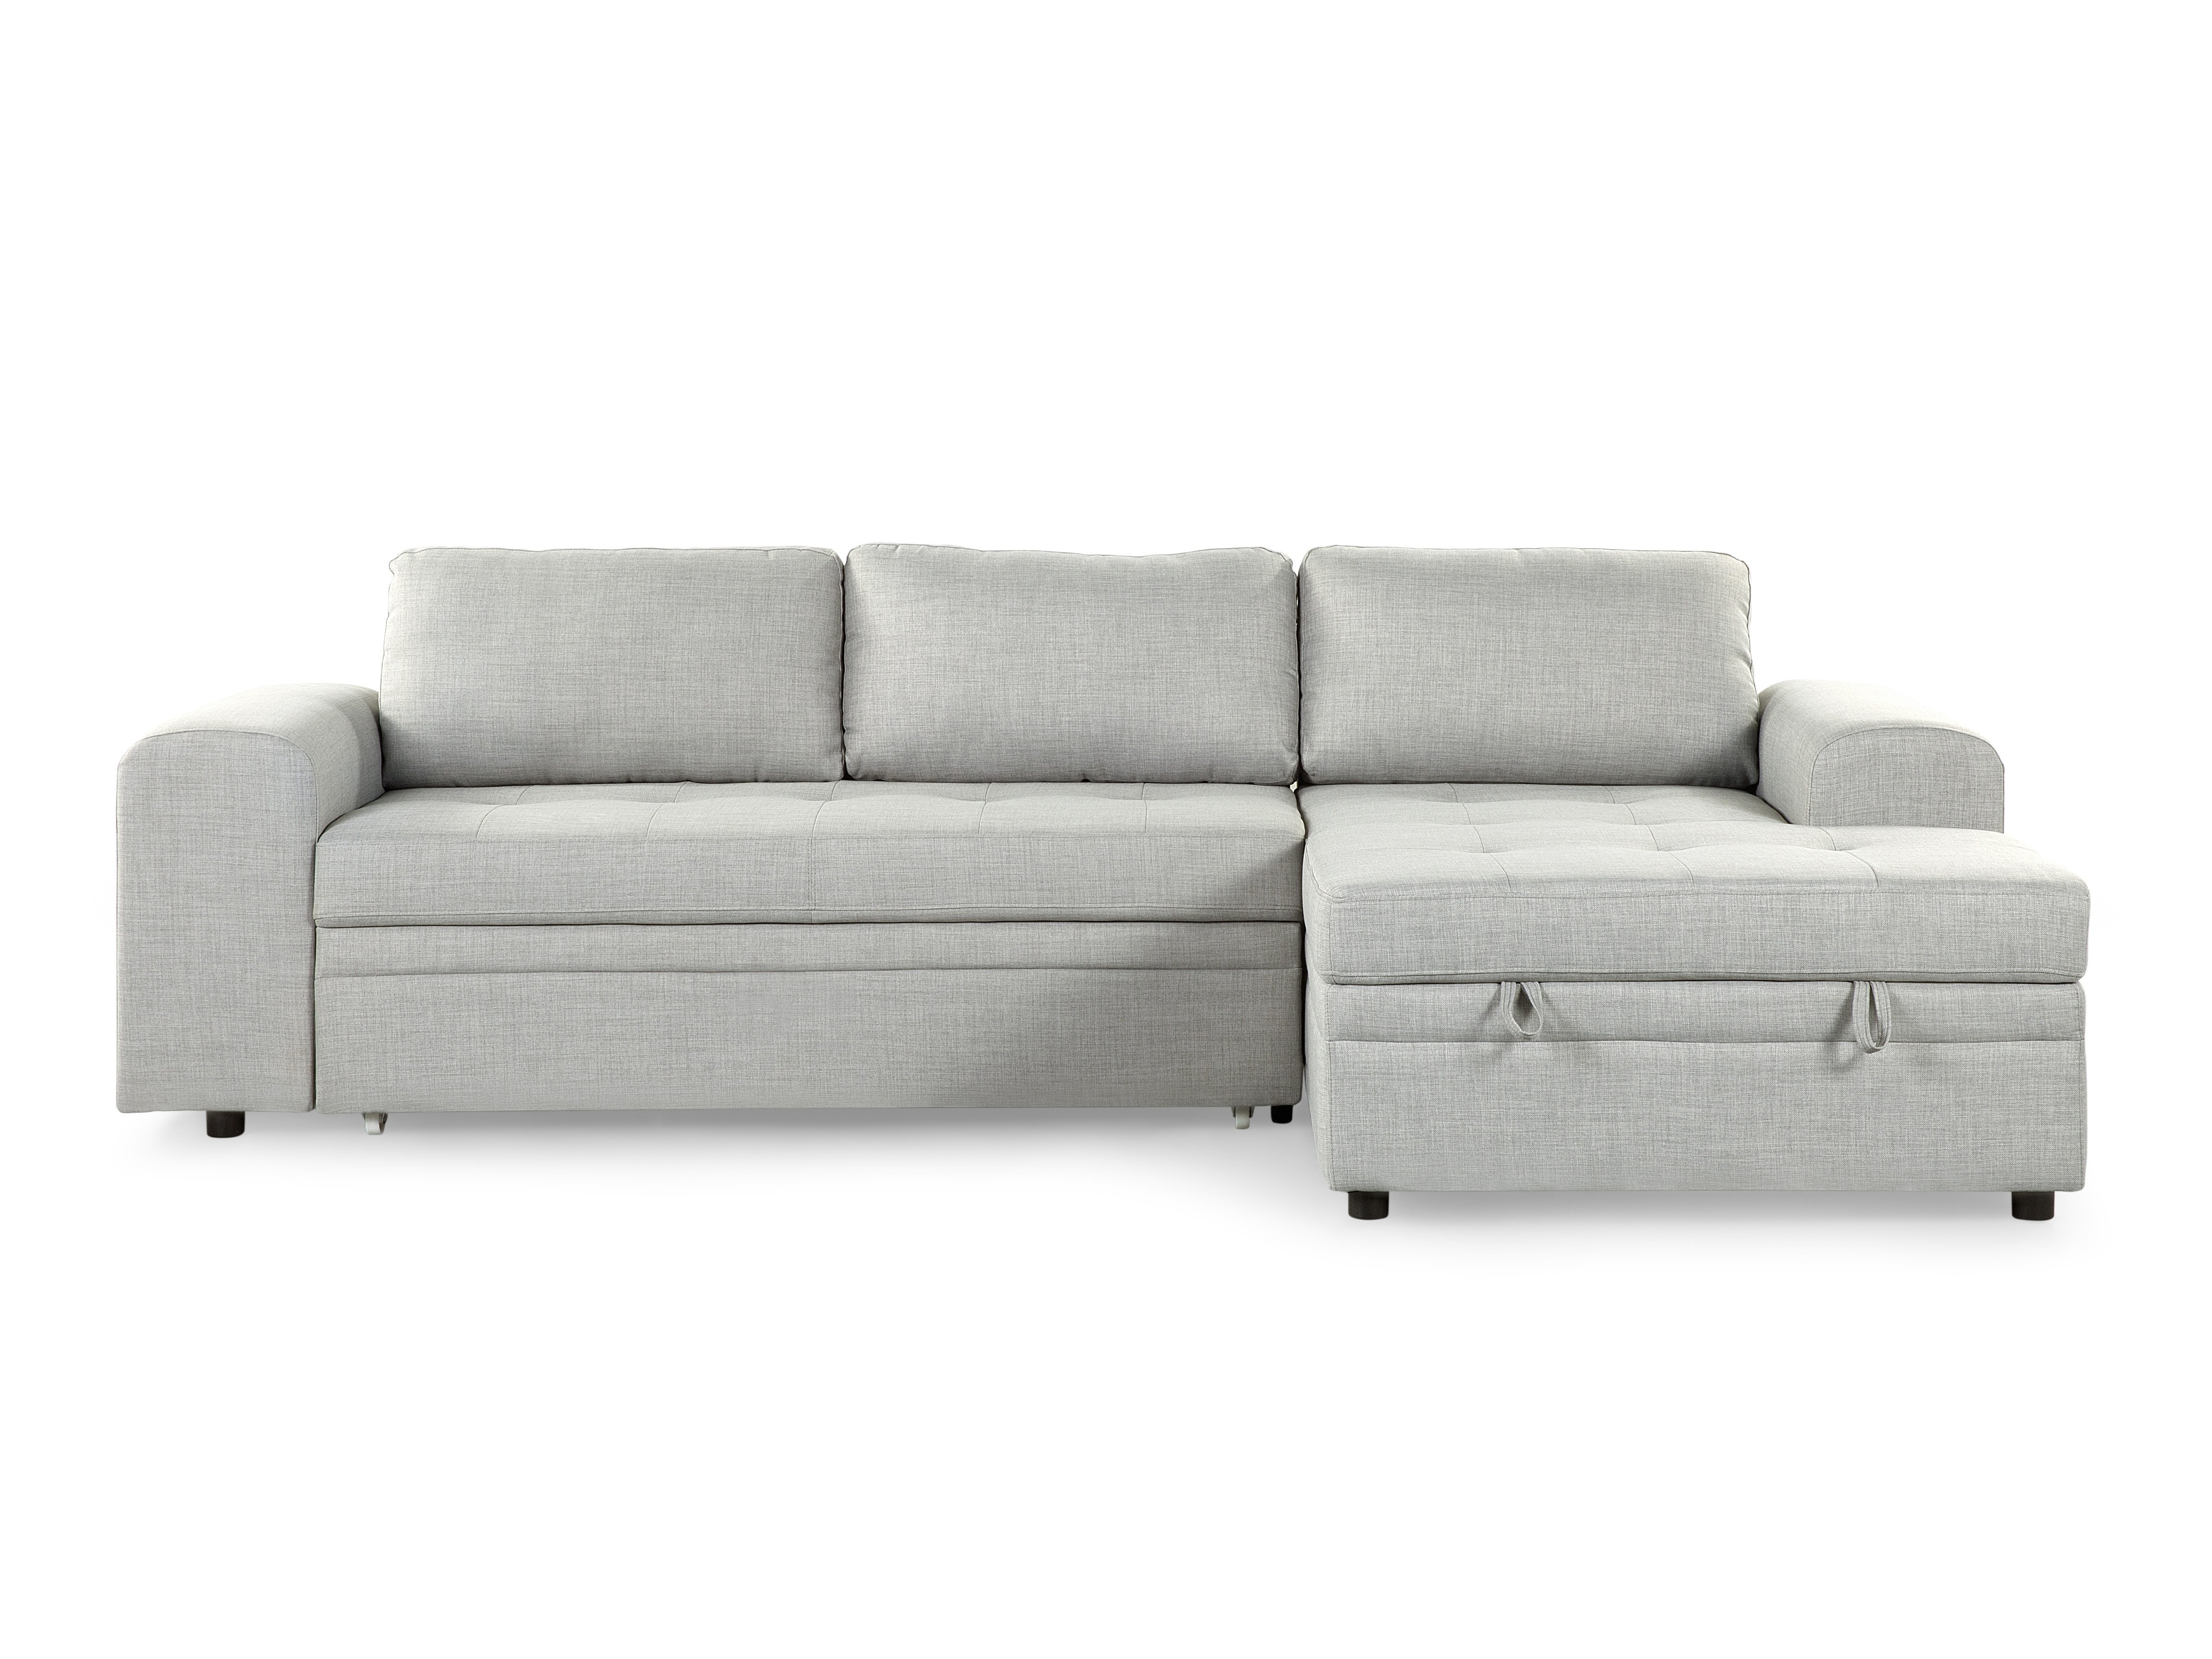 Most Popular Chaise Lounge Sleeper Sofas With Regard To Sectional Sleeper Sofa – Light Gray Kiruna (View 12 of 15)